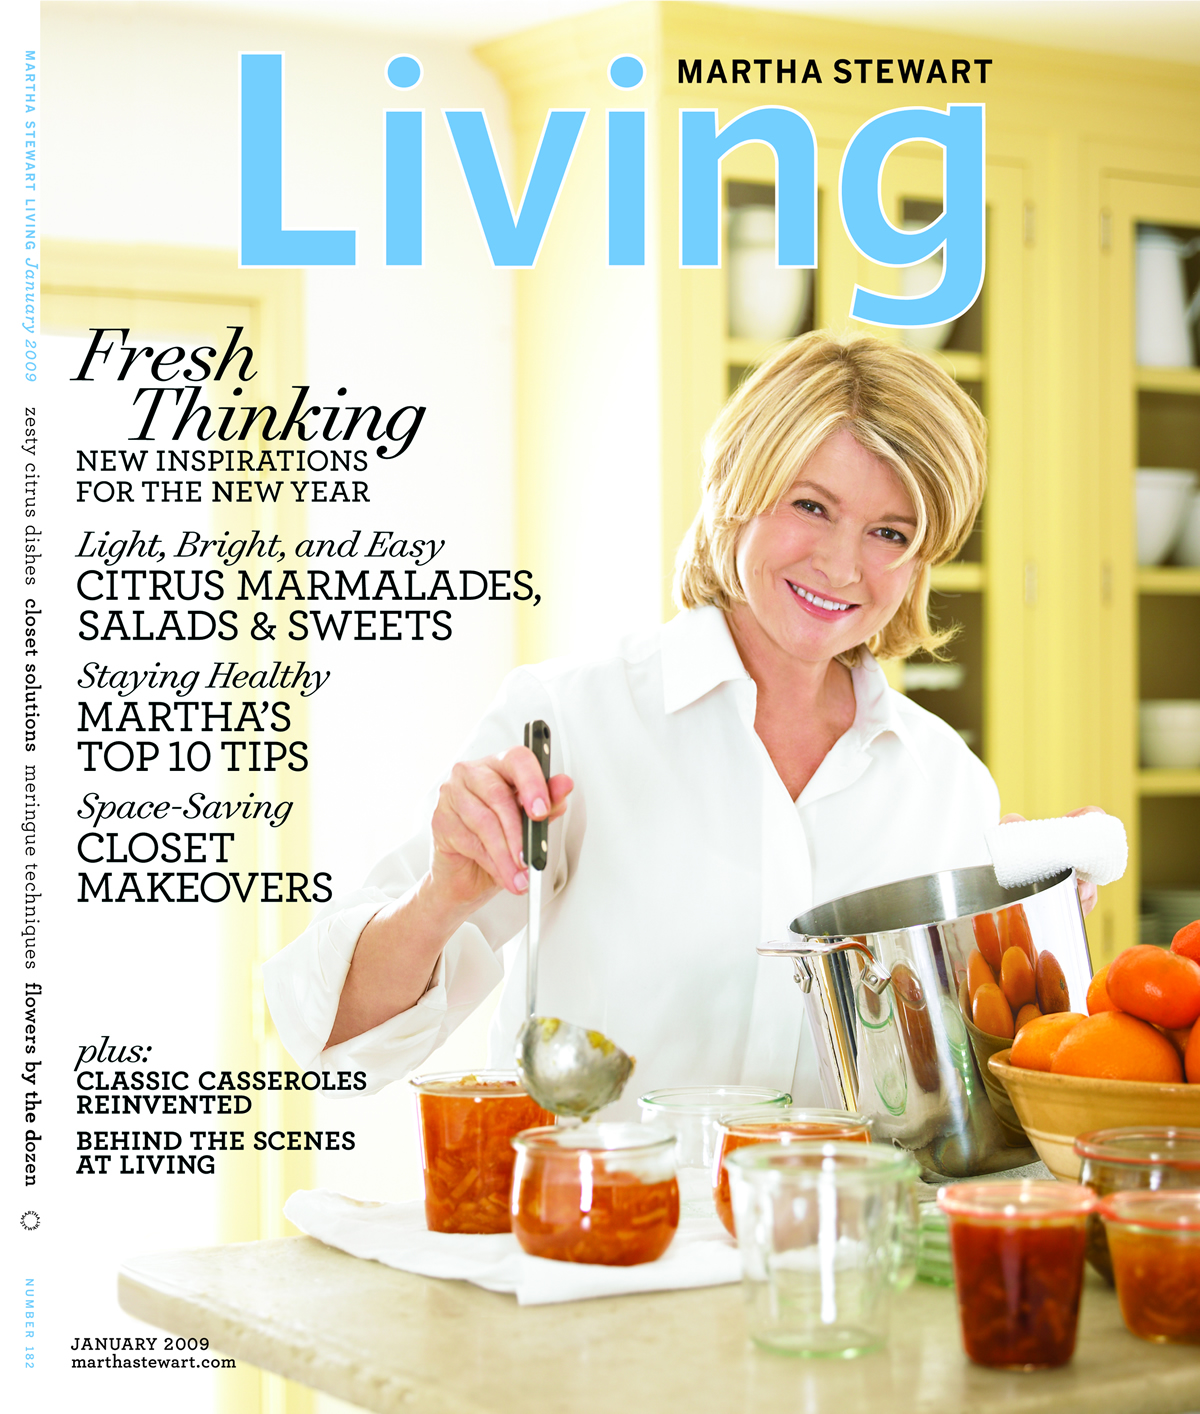 marthaStewartLiving2009jan_x